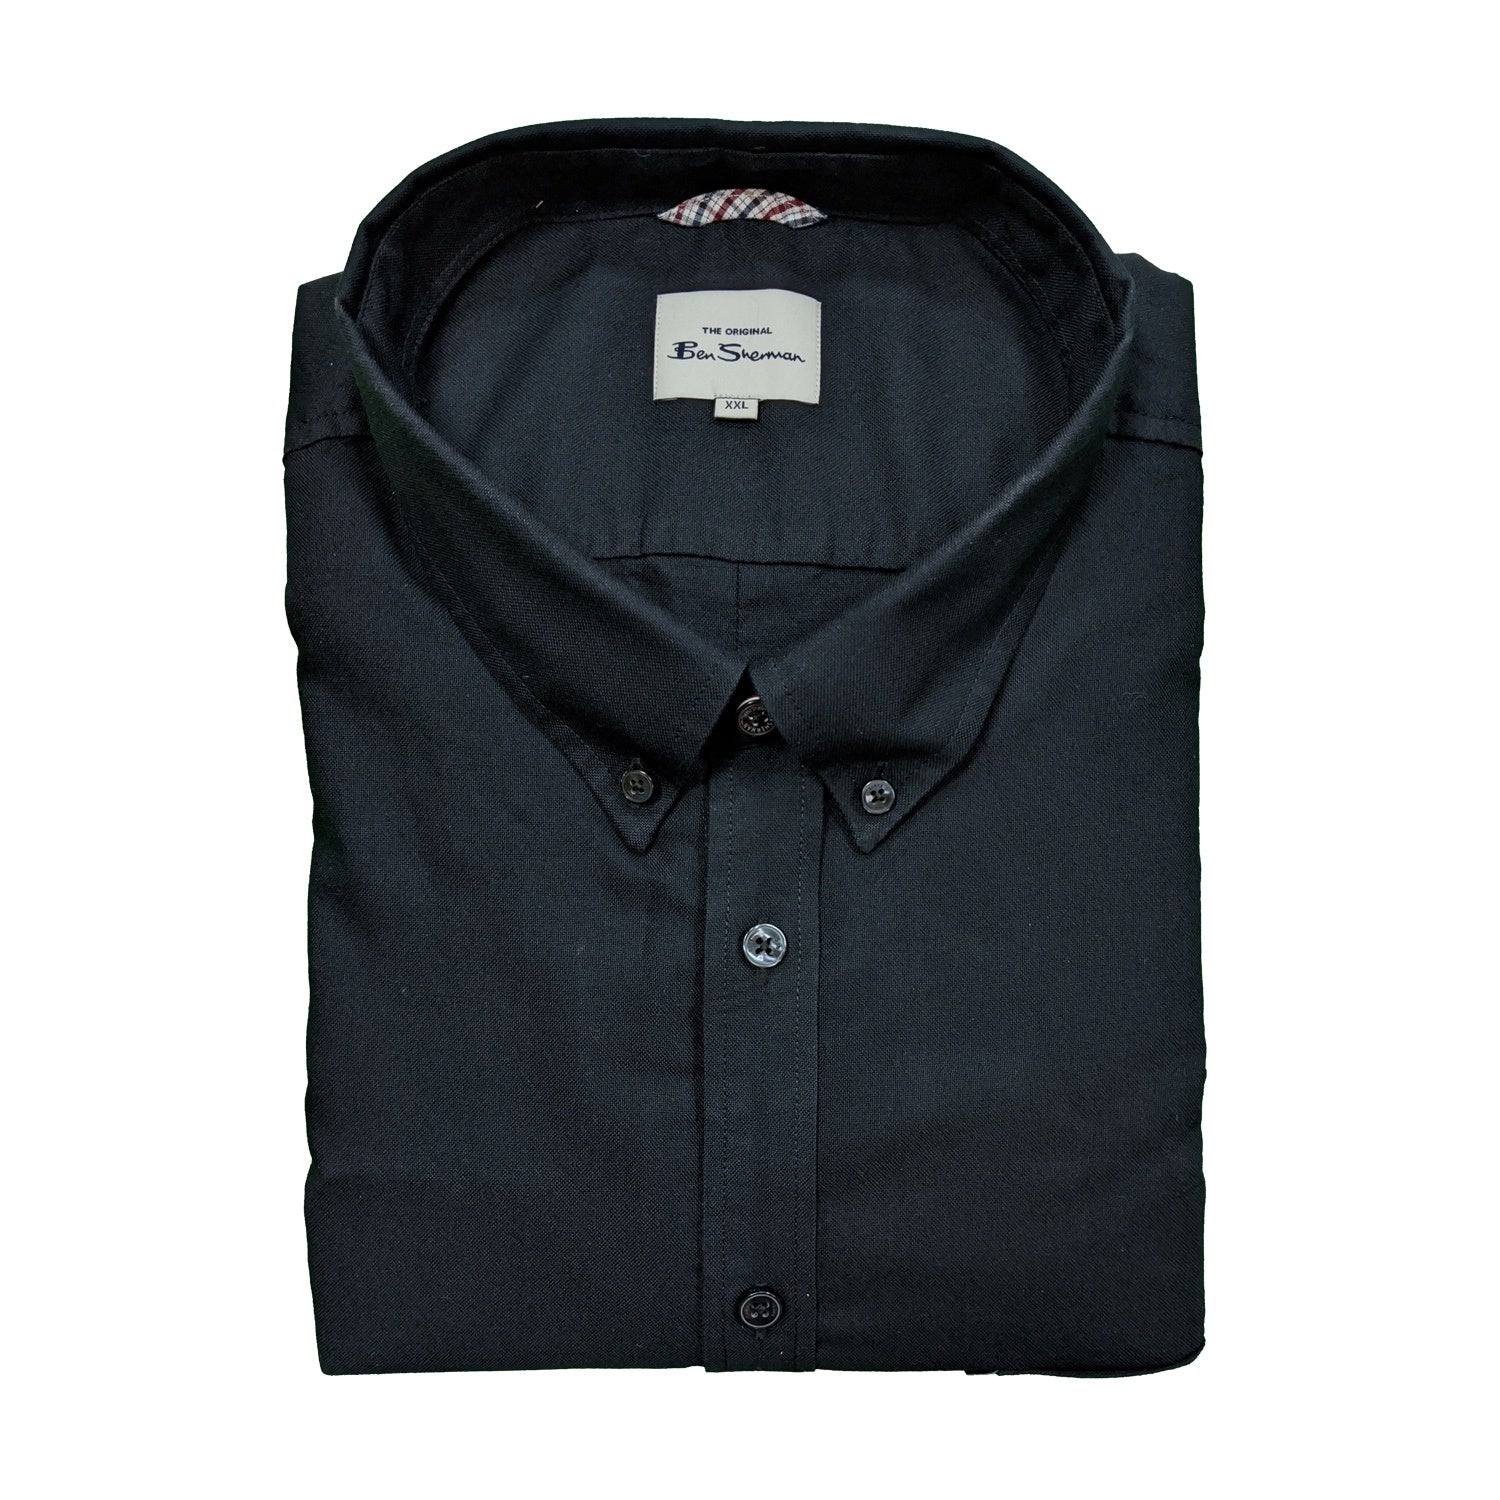 Ben Sherman S/S Oxford Shirt - 0059140IL - Black 1